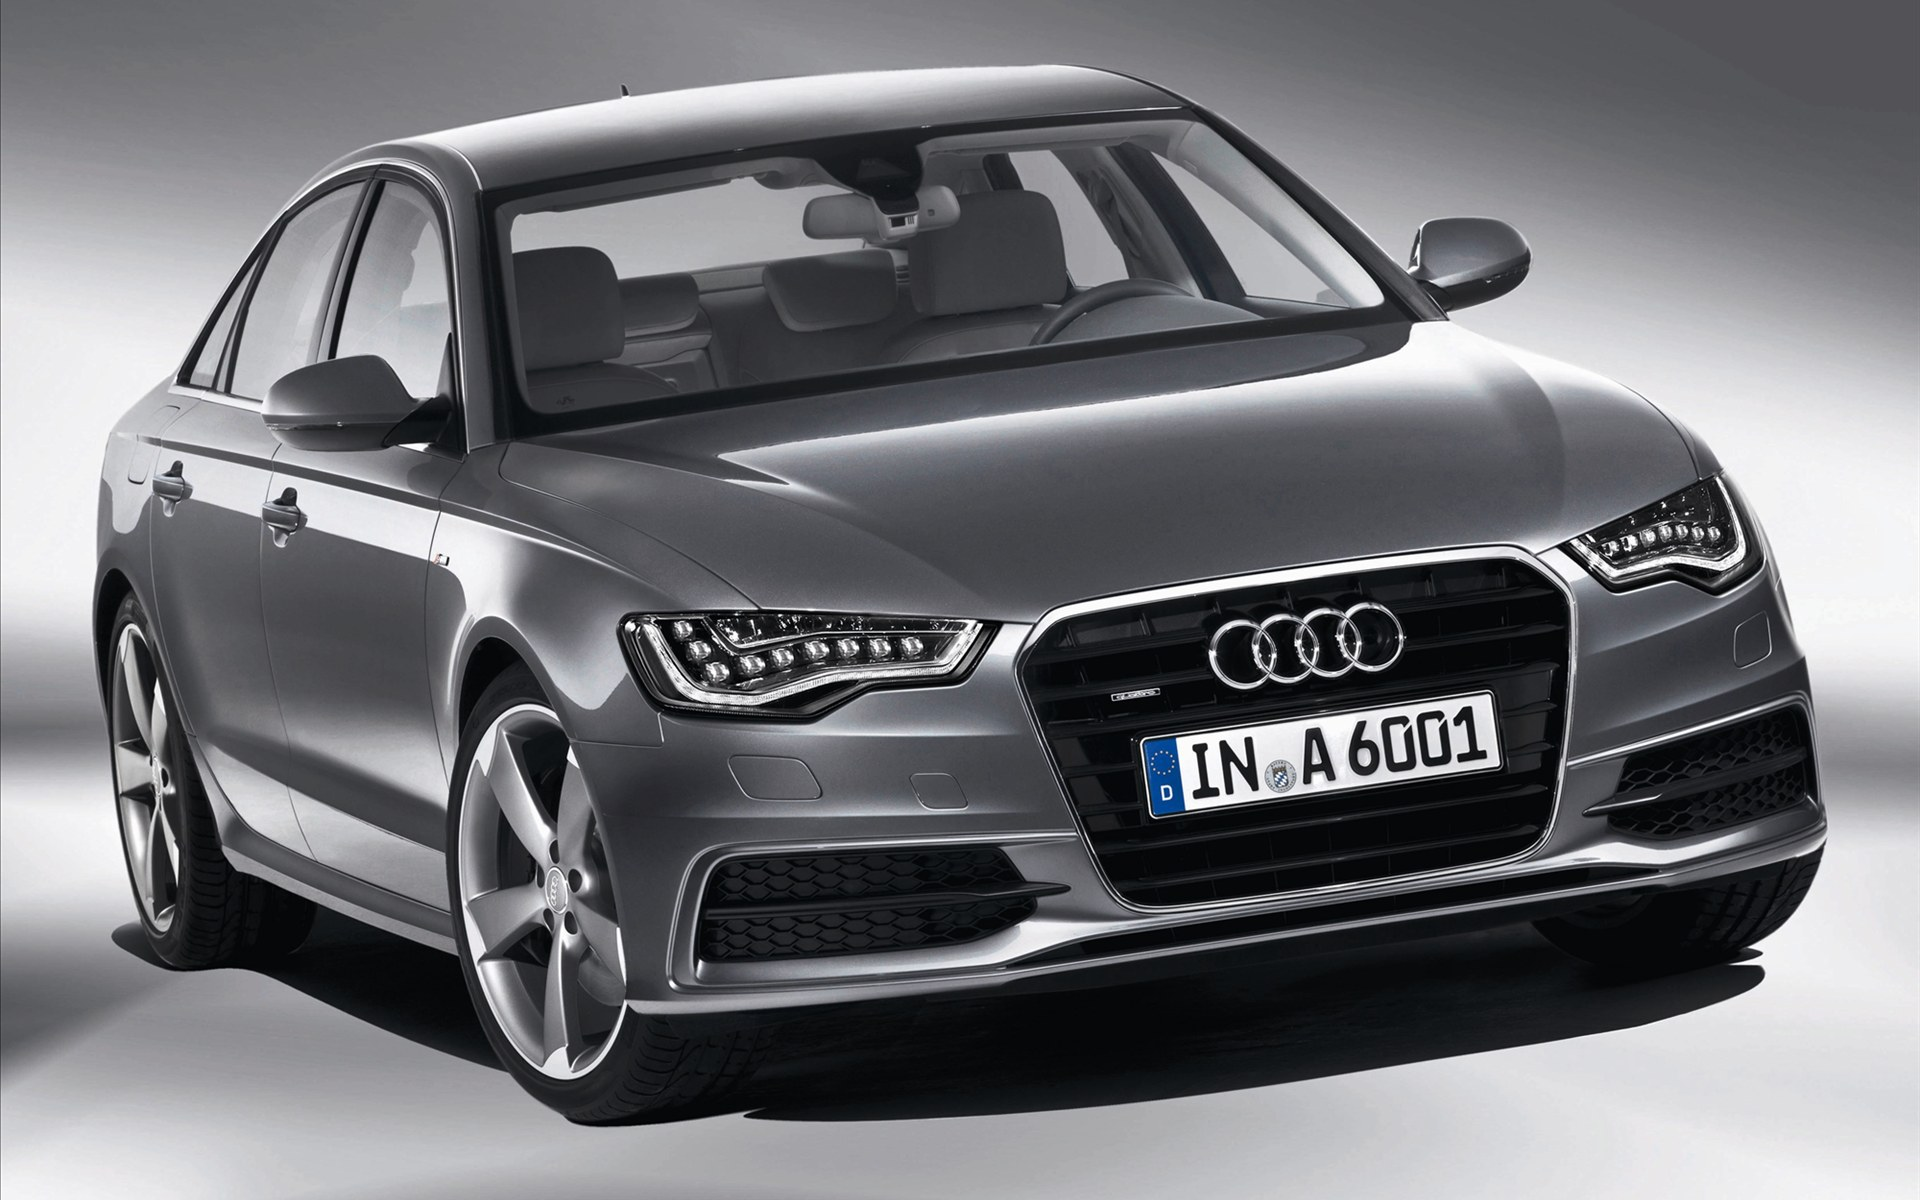 hight resolution of audi a6 silver wallpaper for pc tablet and mobile download